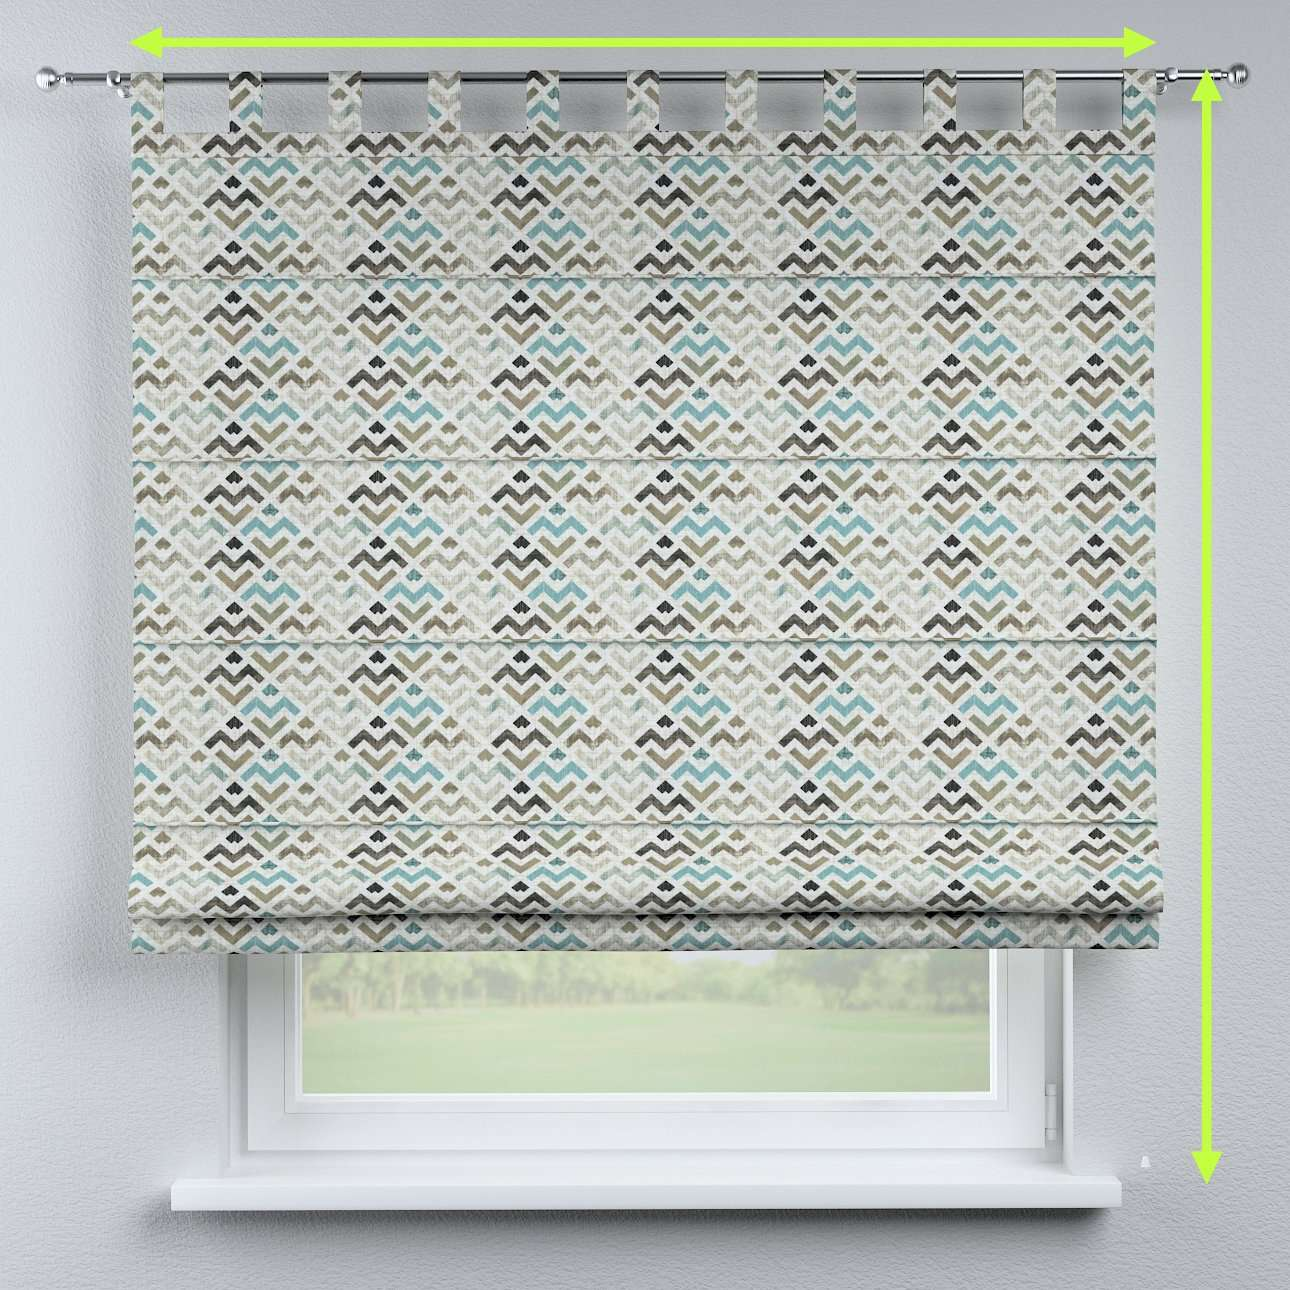 Verona tab top roman blind in collection Modern, fabric: 141-93